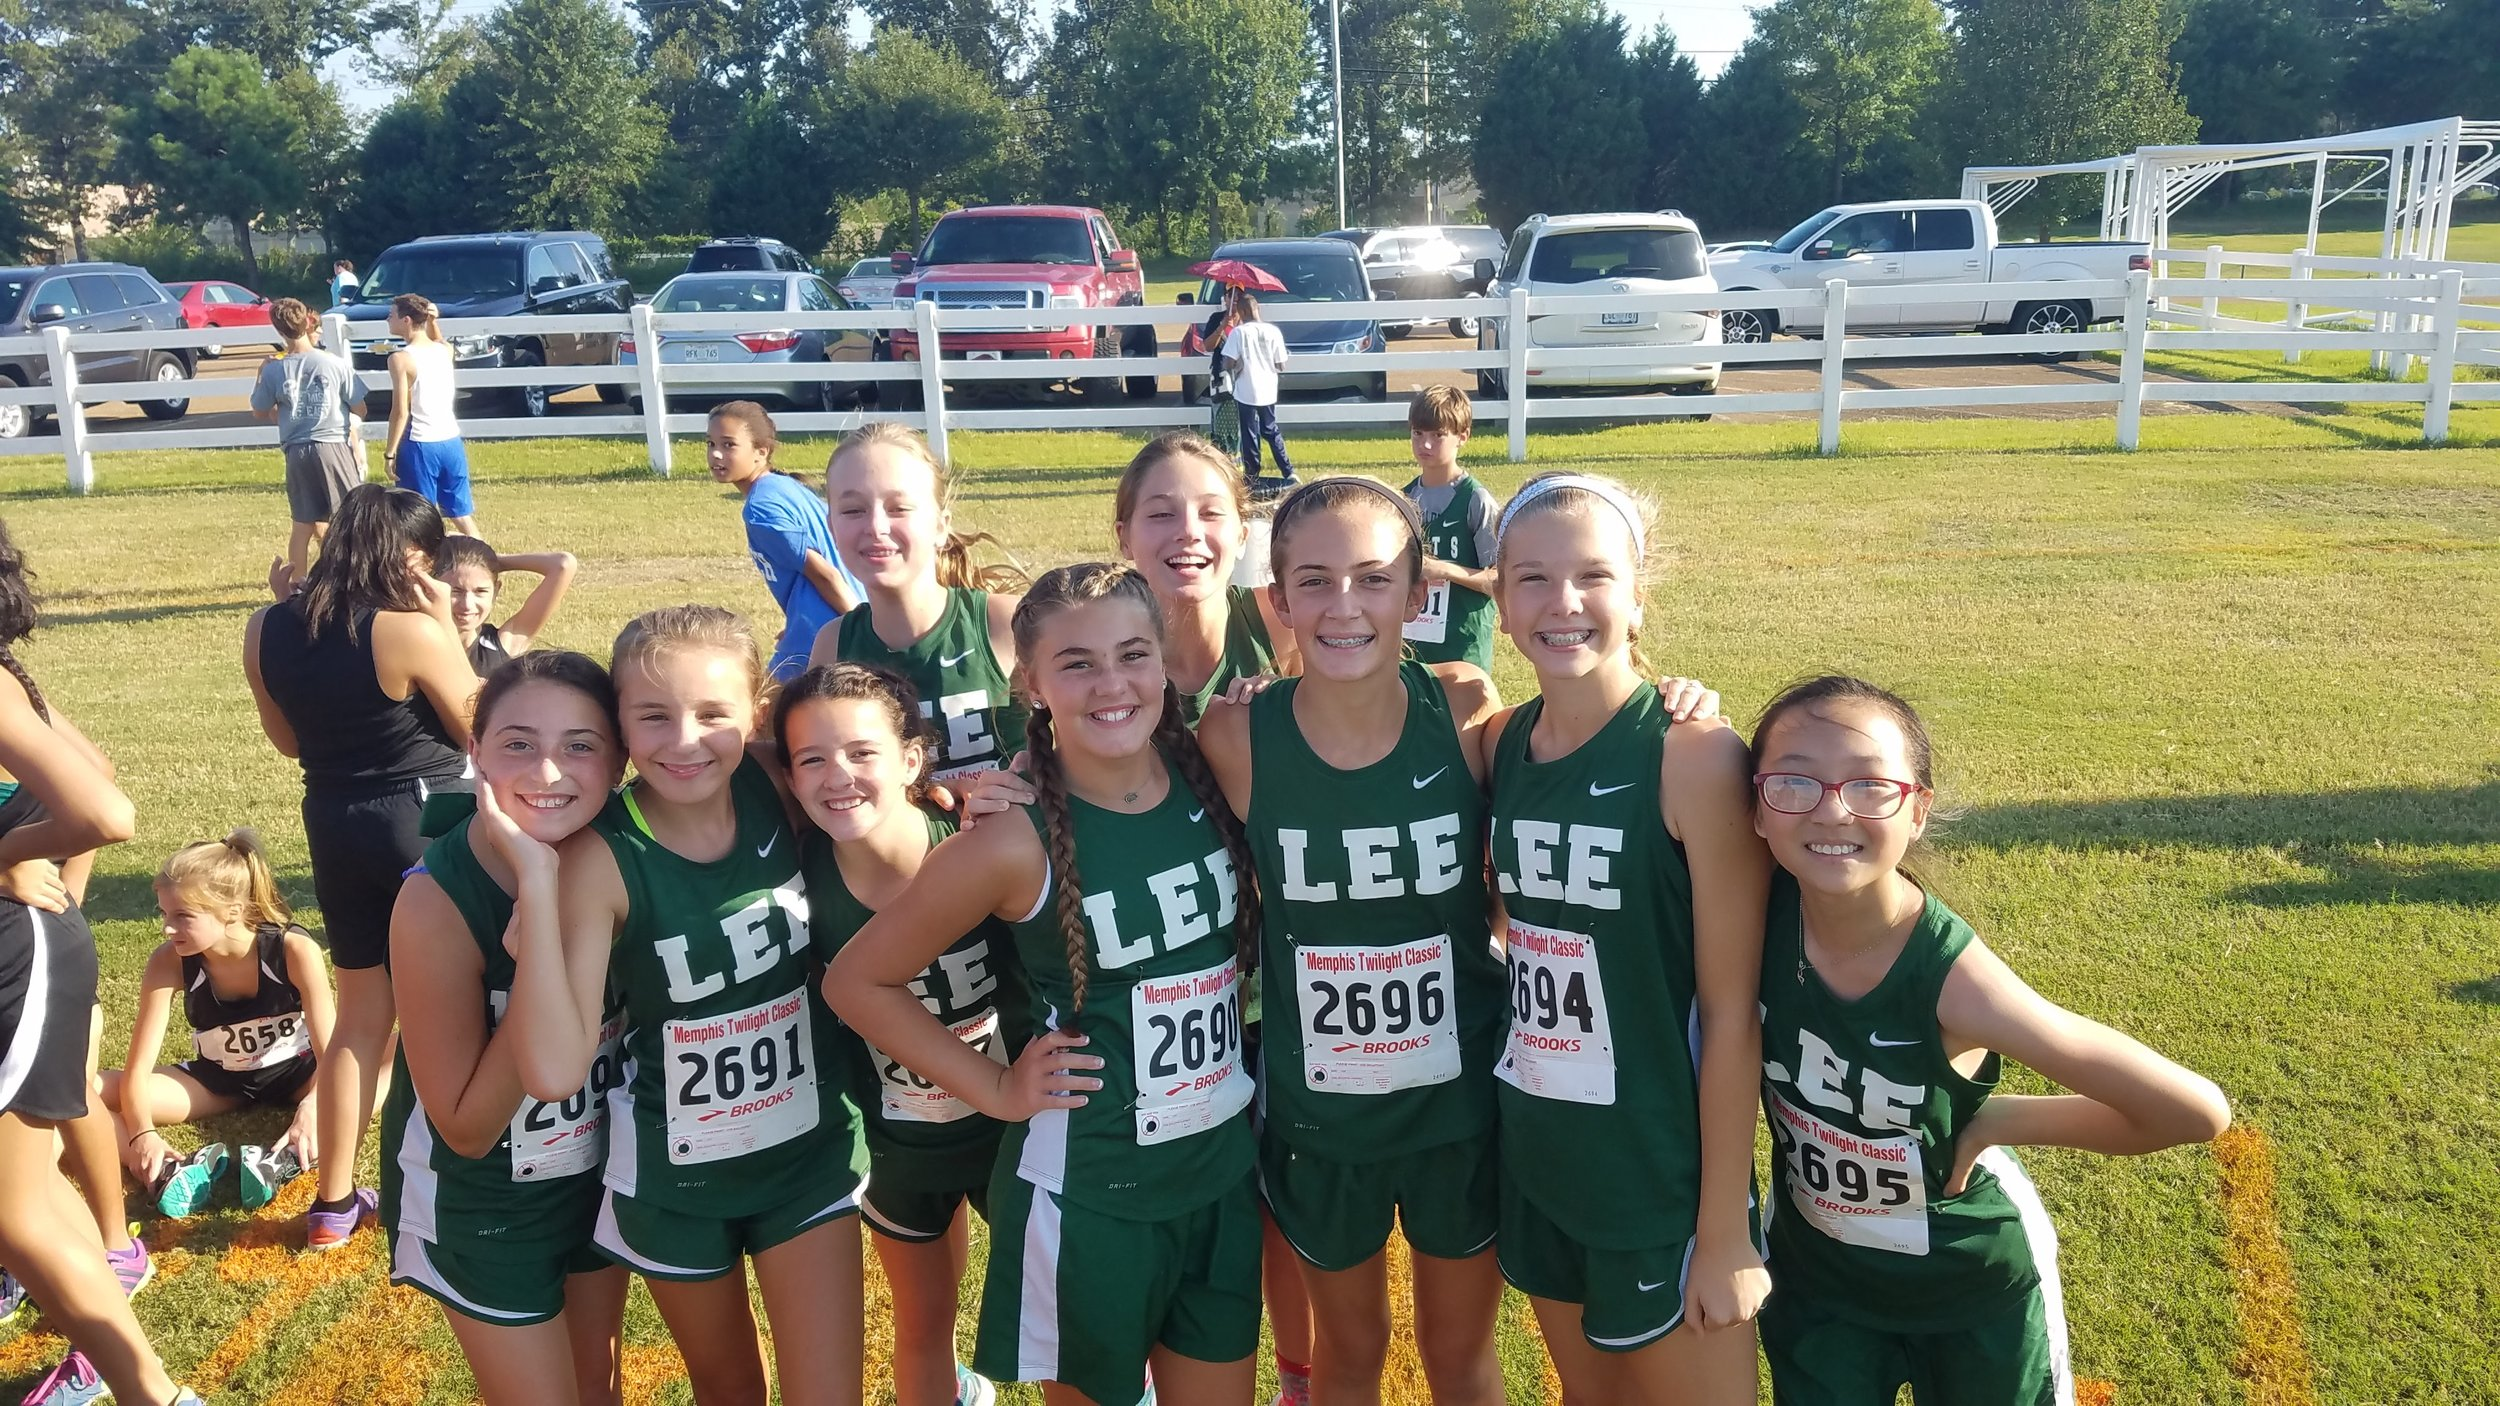 THE CROSS COUNTRY TEAM WILL HOST THE LEE INVITATIONAL ON MONDAY, OCTOBER 10 AT 4:00 AT THE CLARKSDALE COUNTRY CLUB. THIS WILL BE THE LAST MEET THEY WILL HOST IN CLARKSDALE. PLEASE COME OUT TO SUPPORT AND CHEER THEM ON!